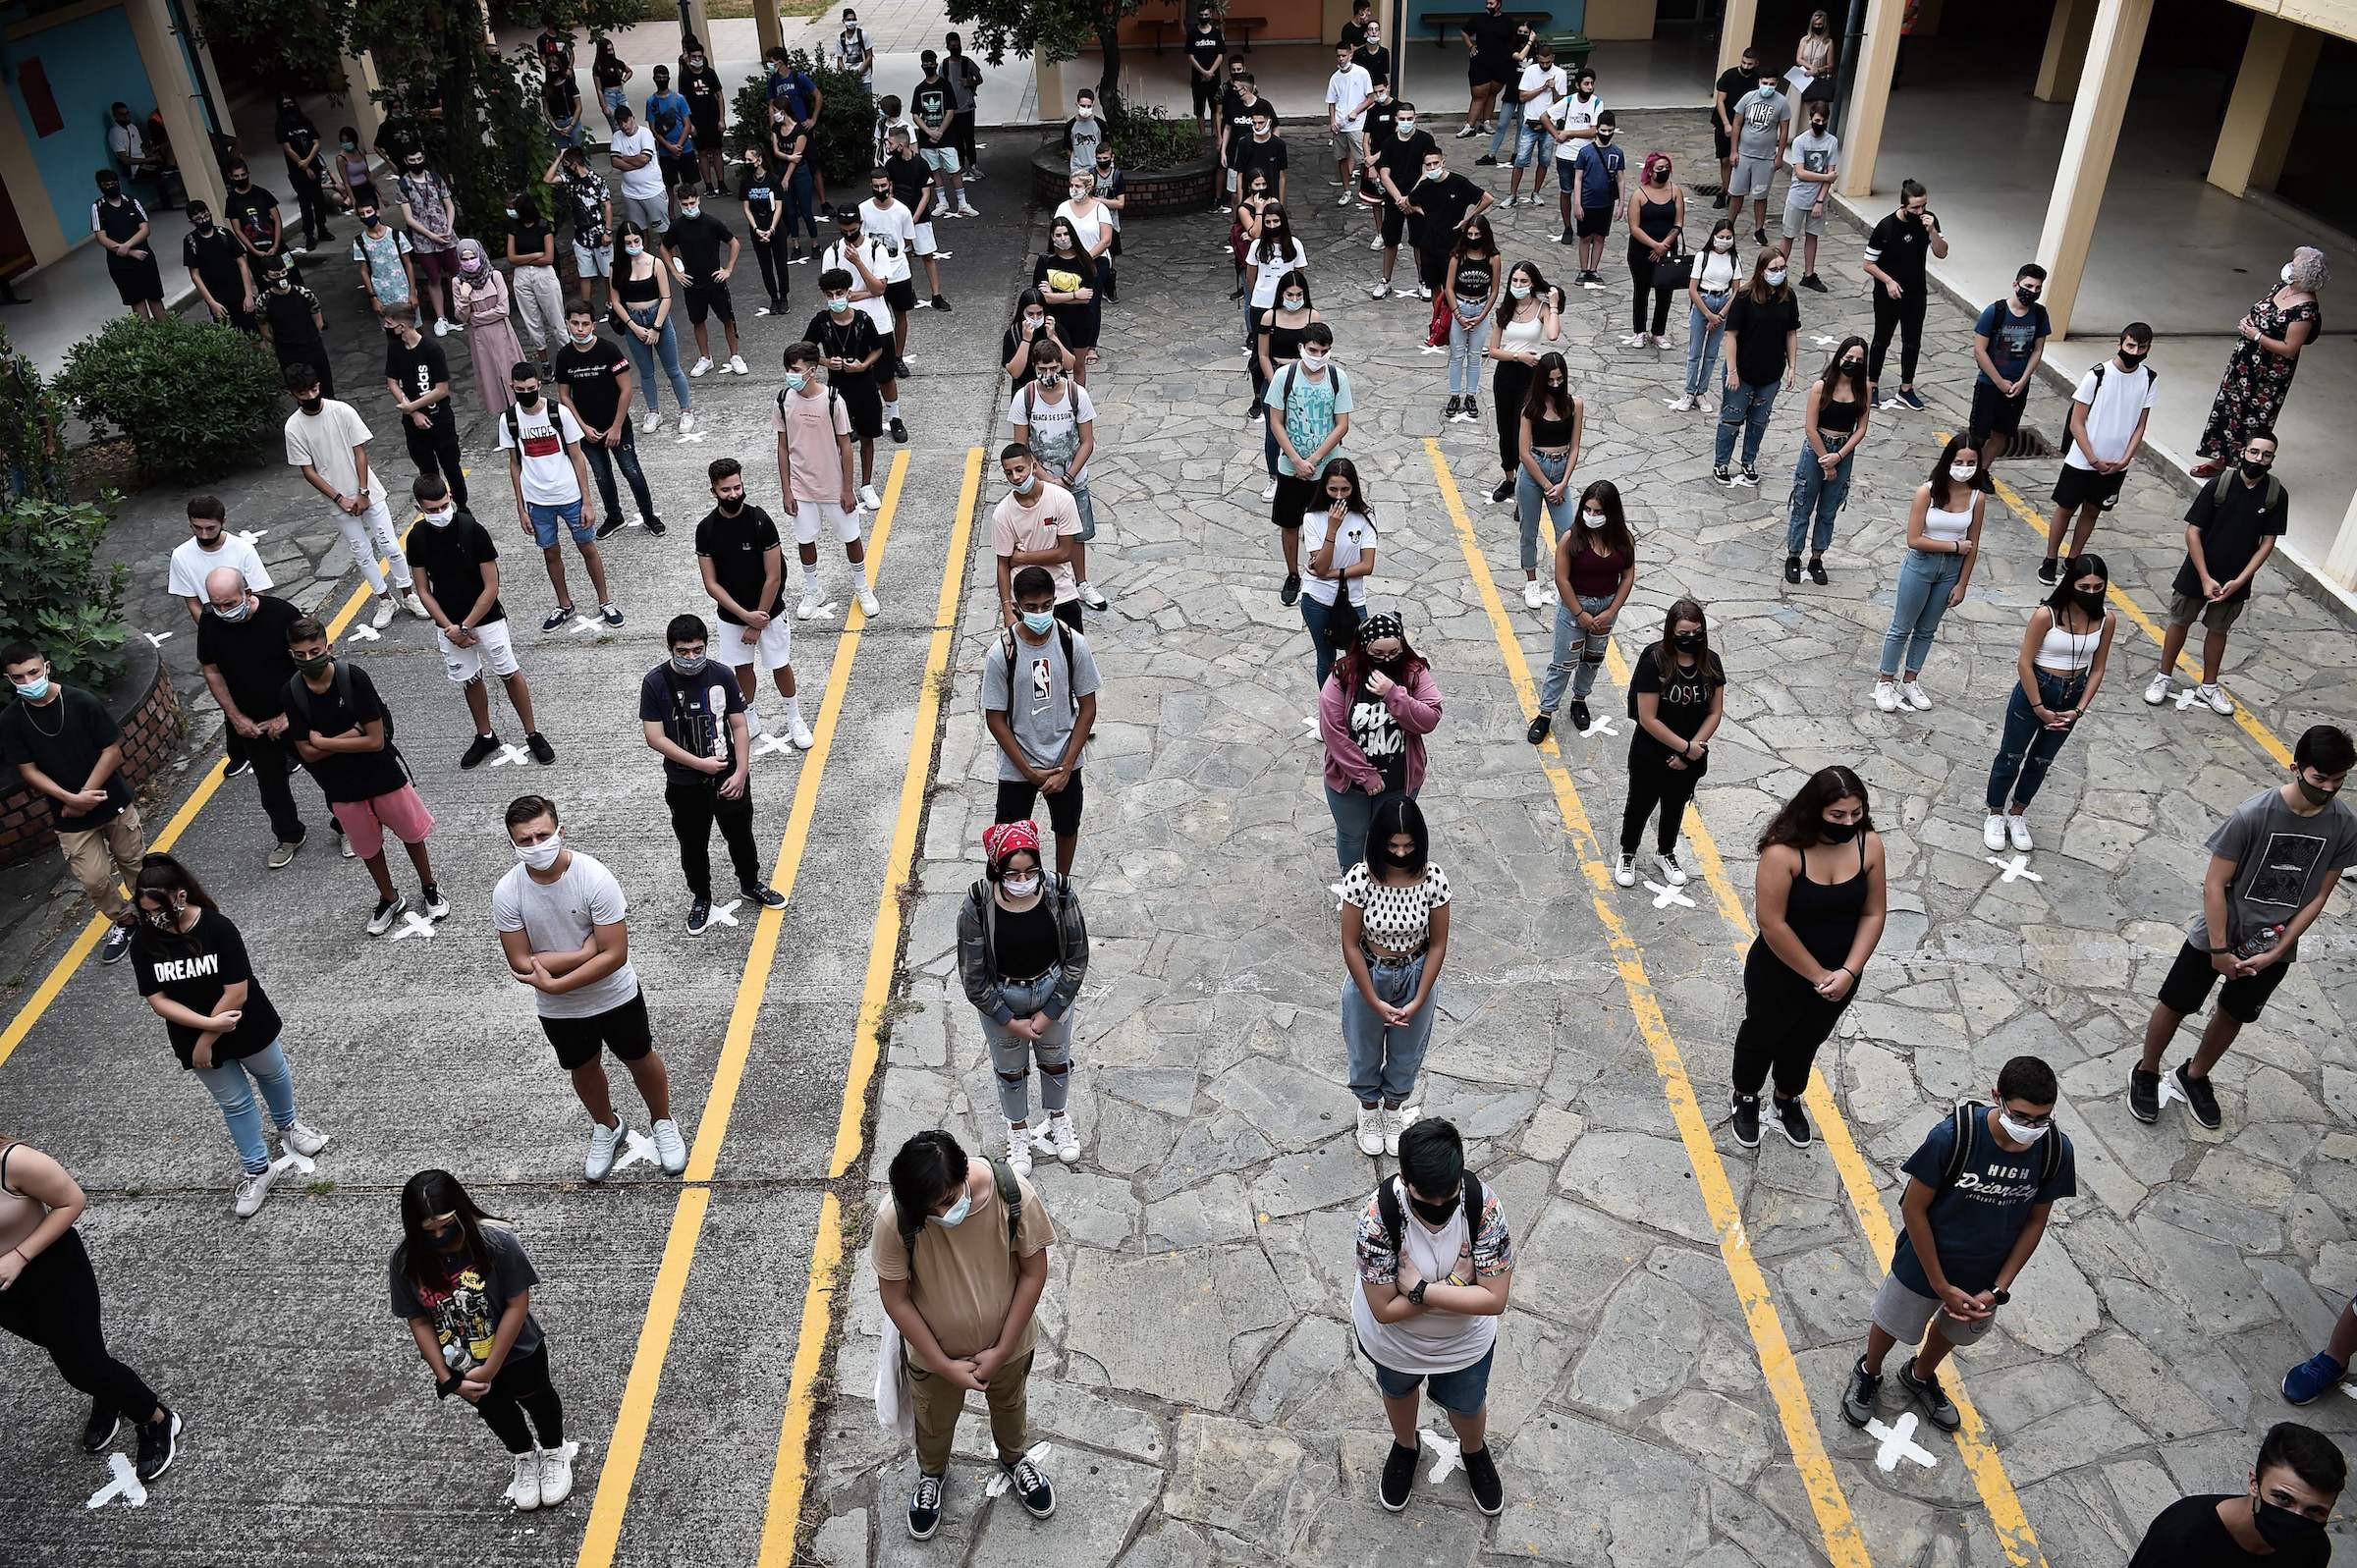 High school students standing in a socially distanced grid in an outdoor setting.